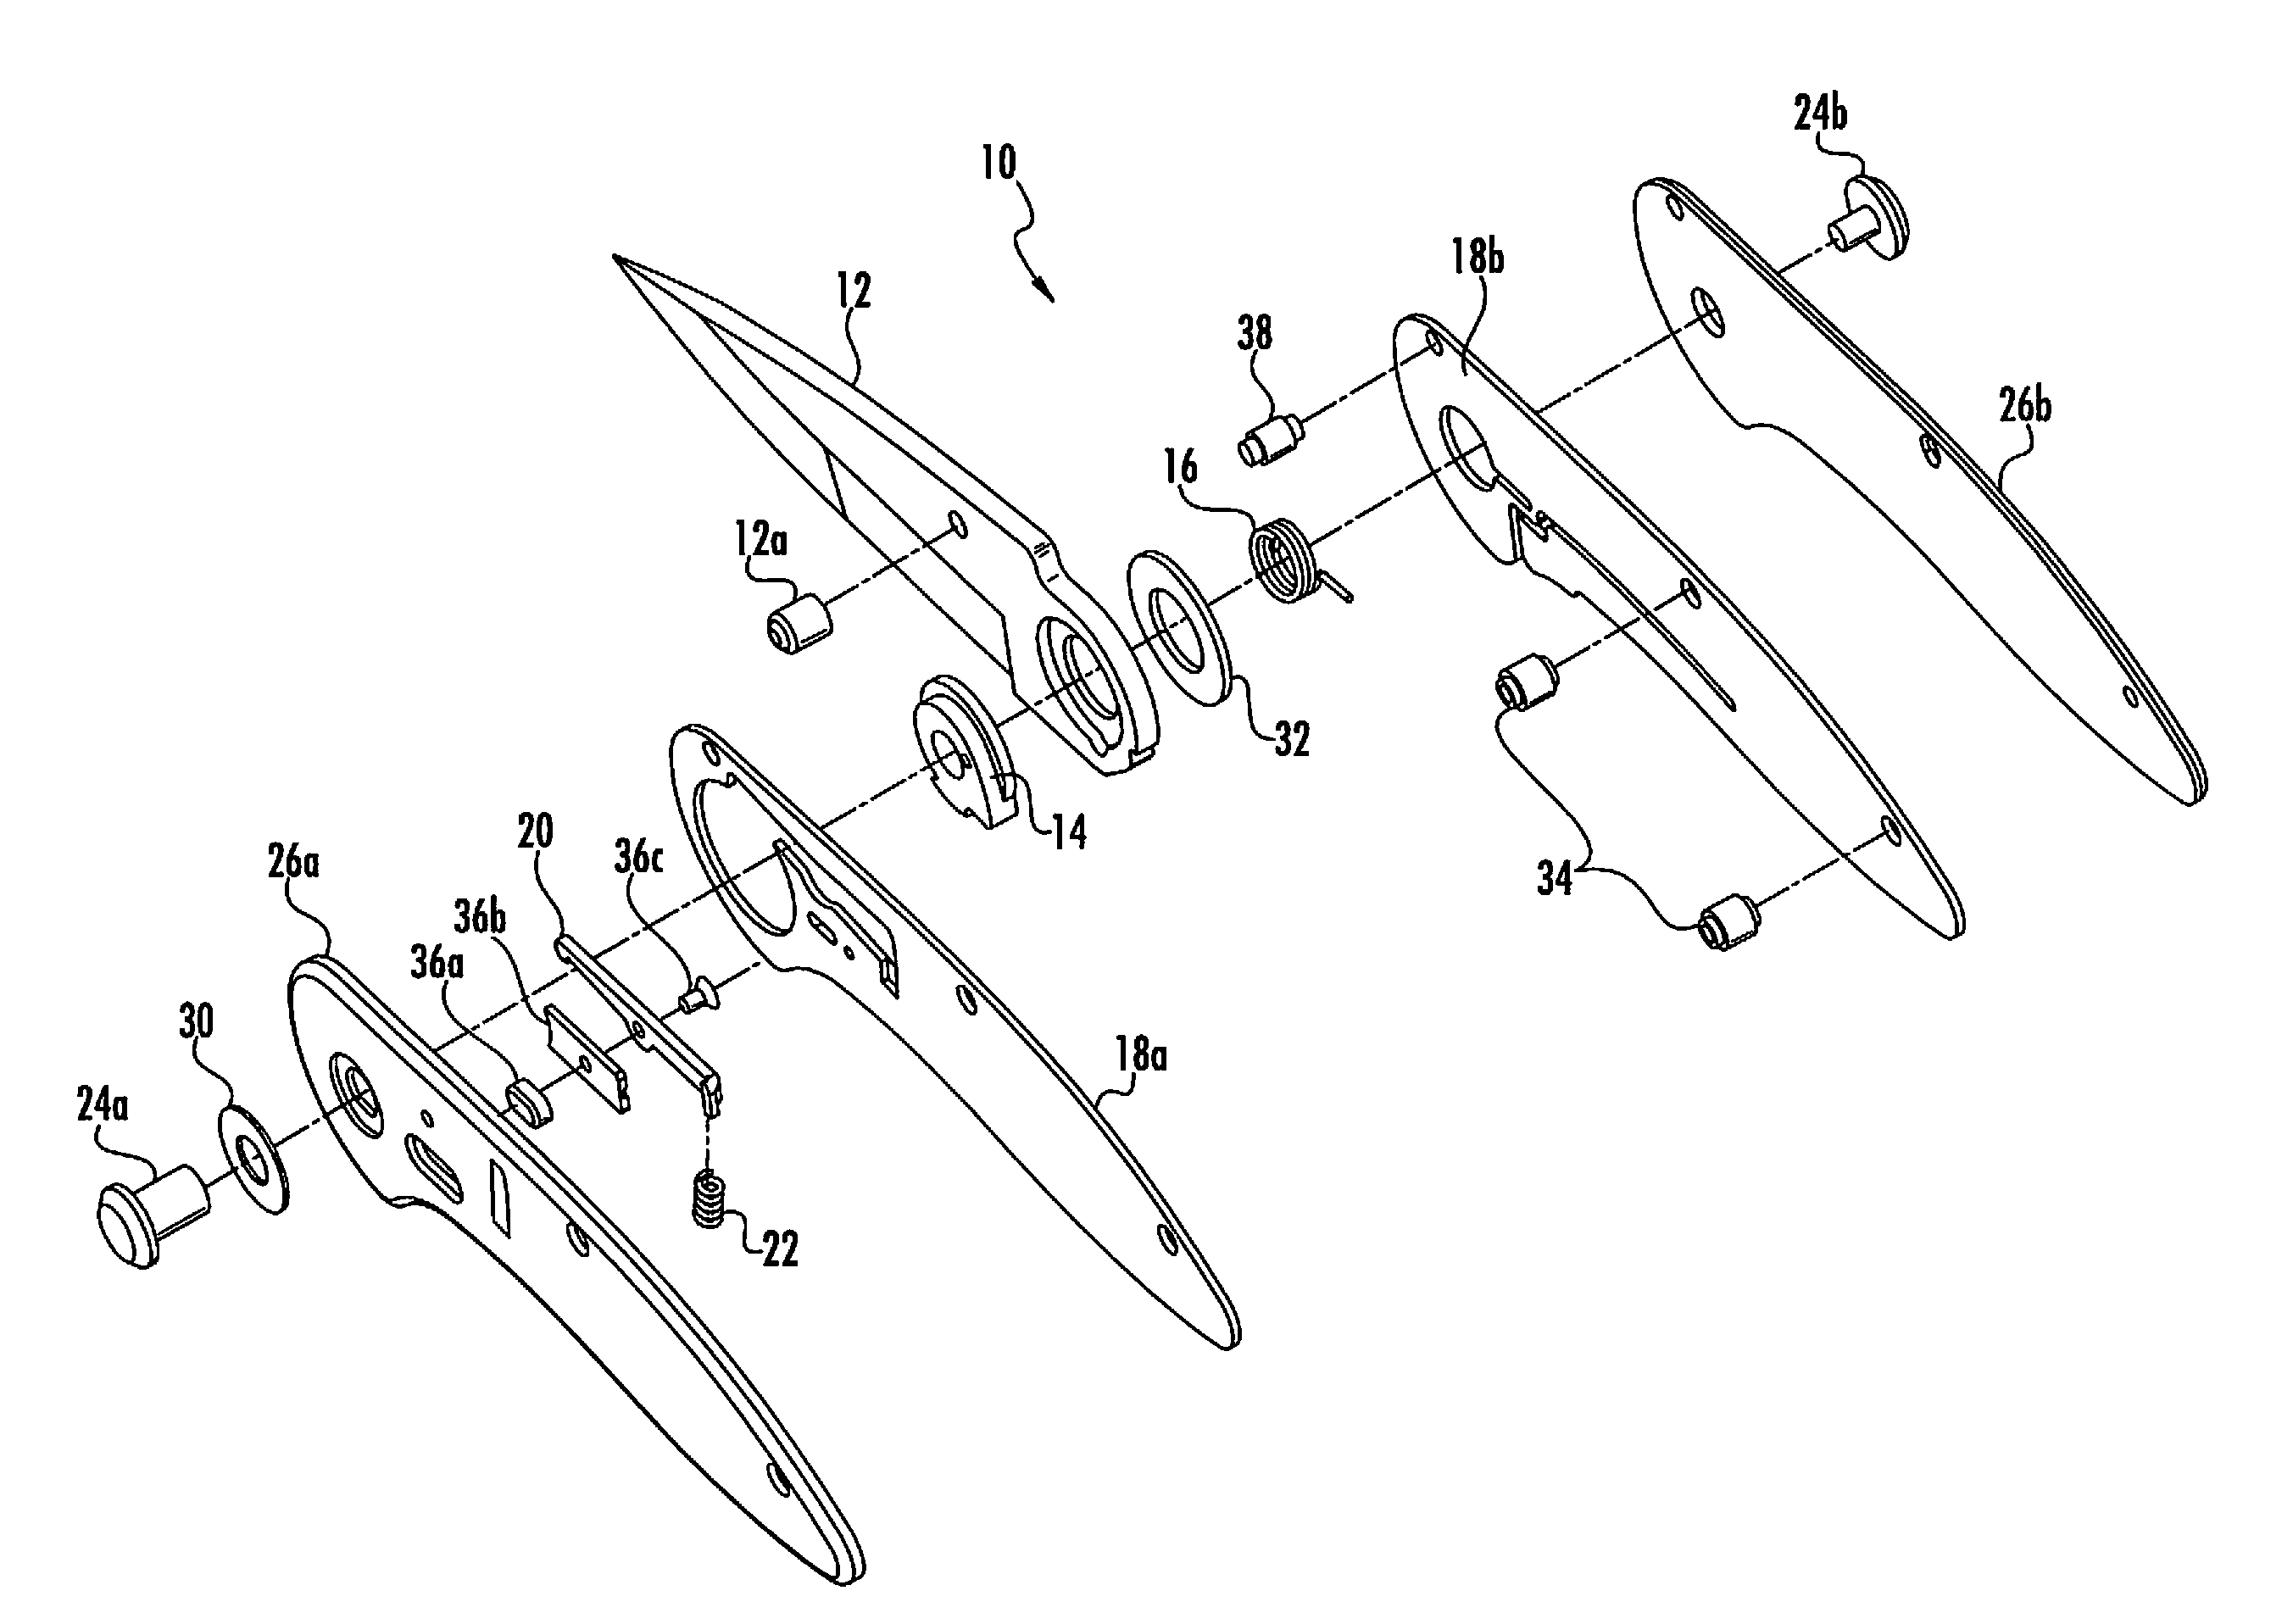 parts of a pocket knife diagram 72 chevelle wiring patent us8499460 spring assisted having separate